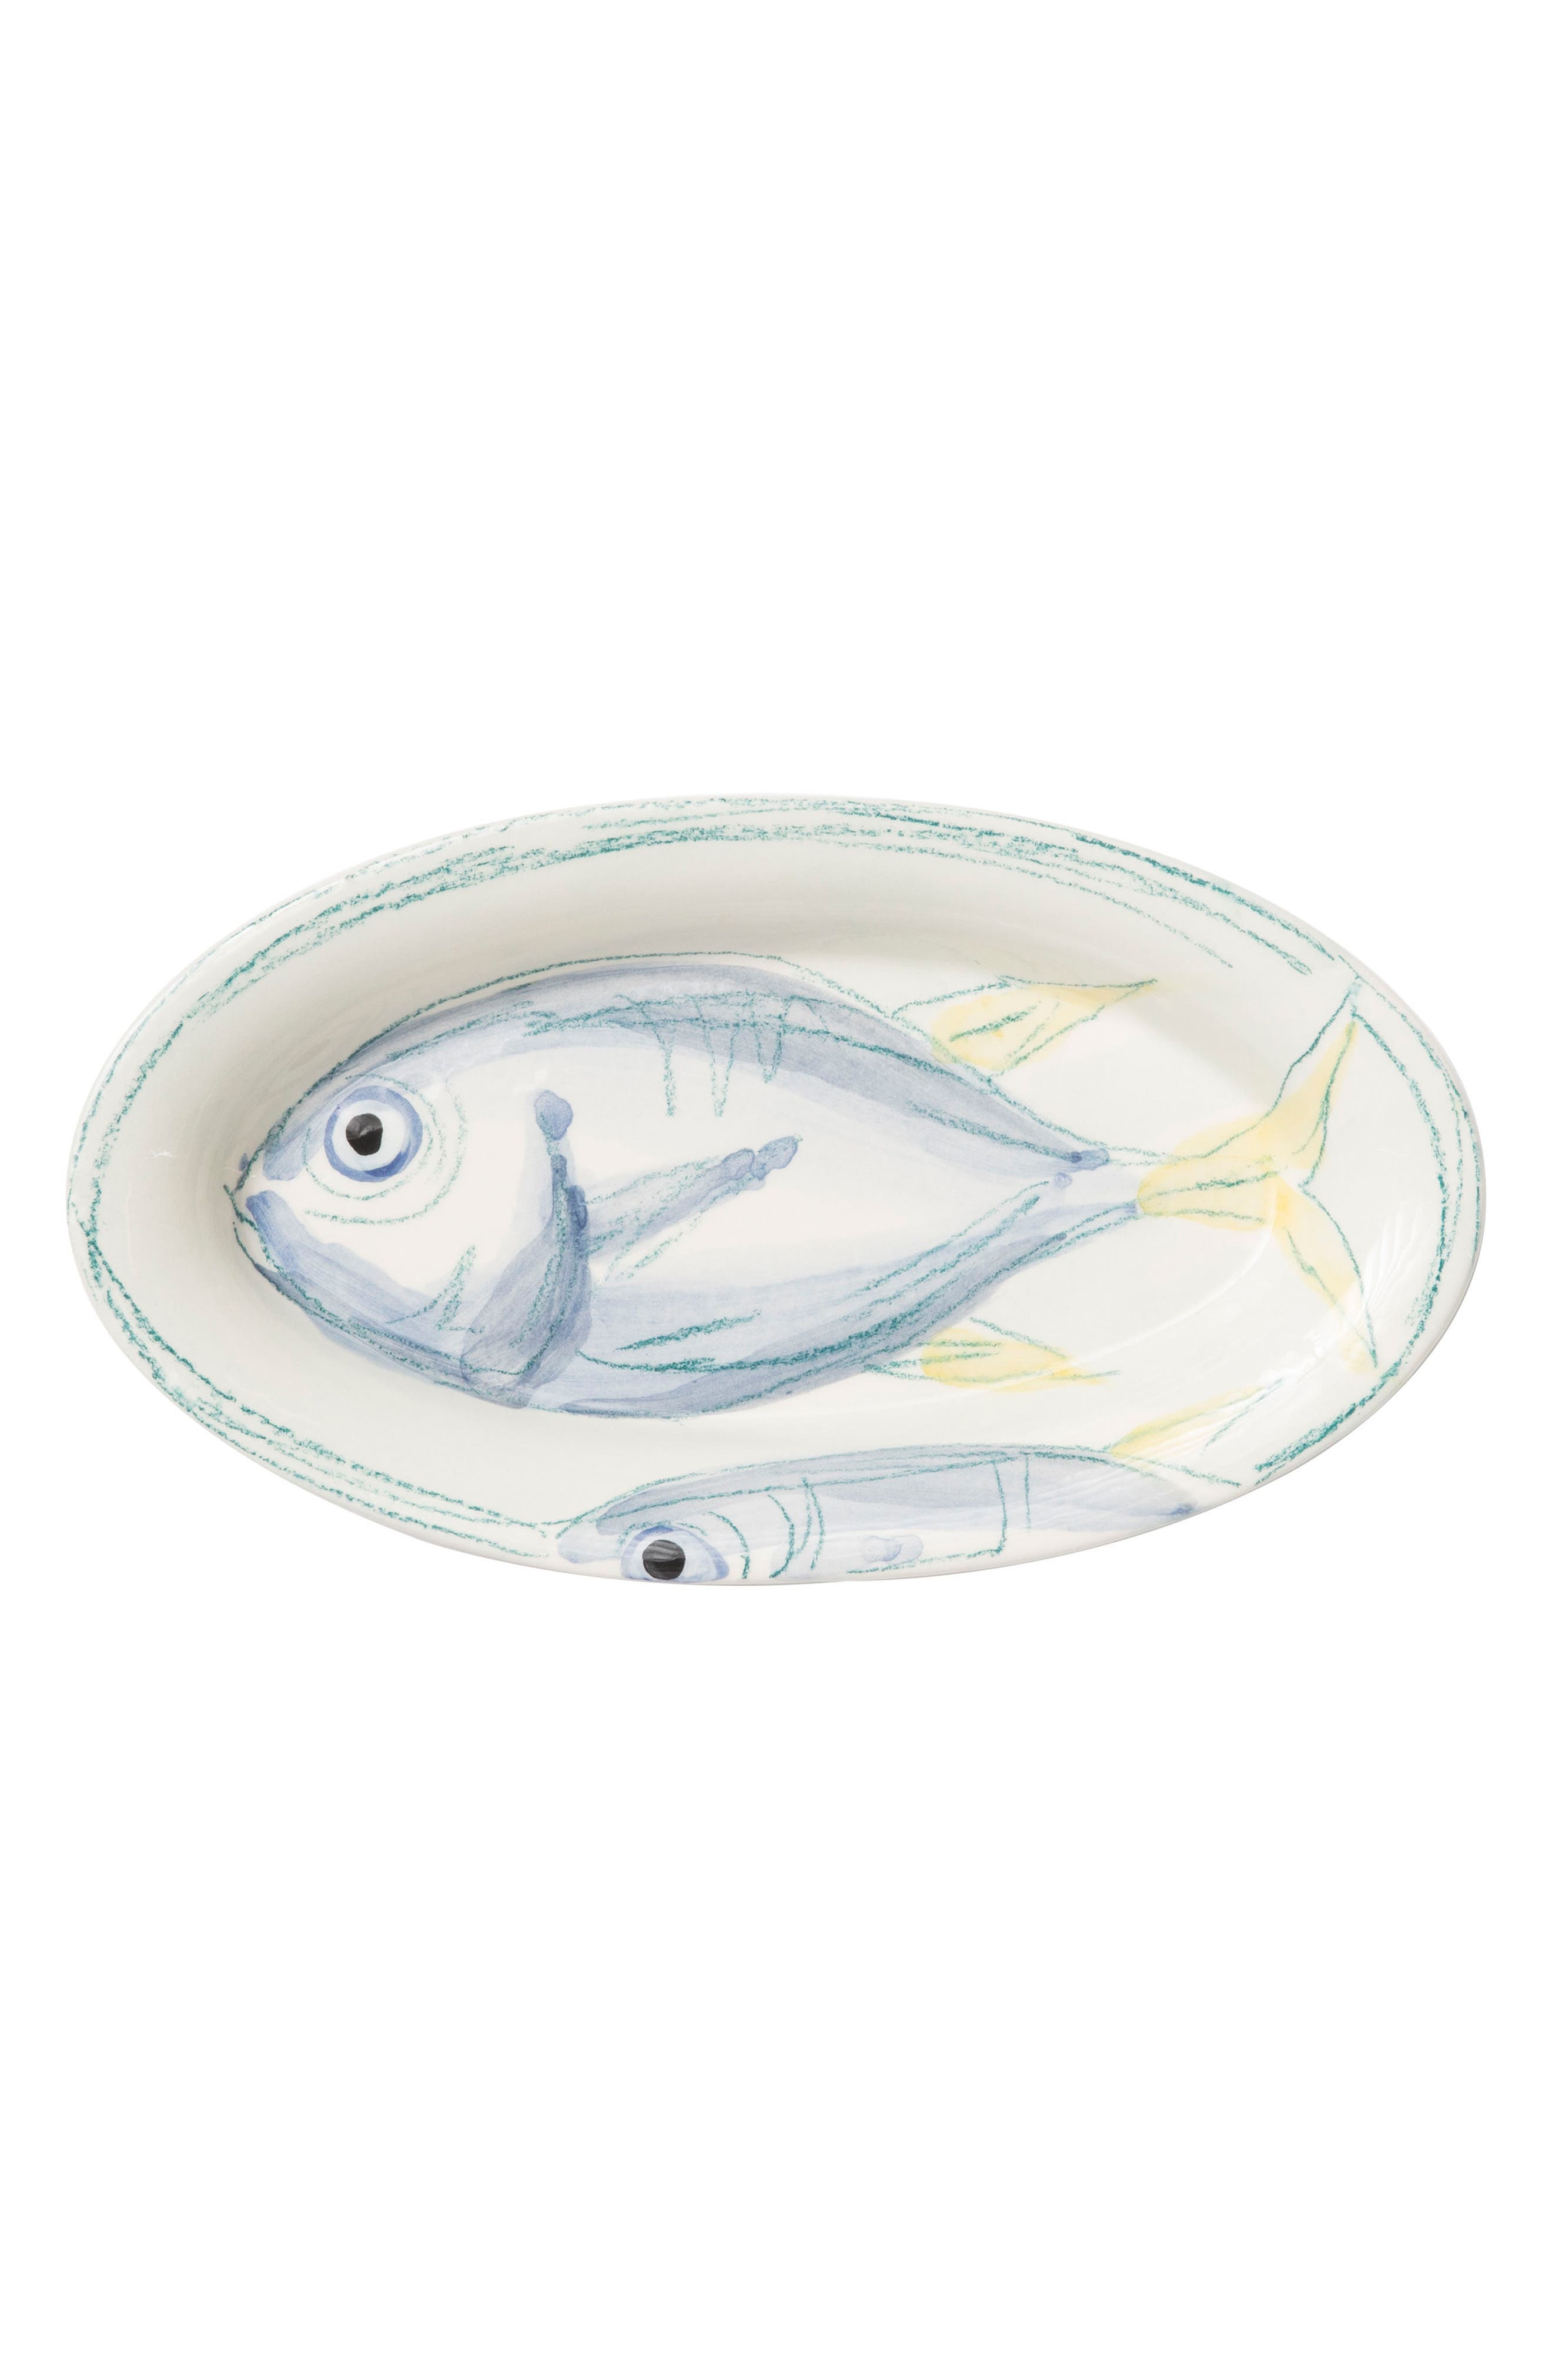 Pescatore Small Oval Tray,                             Main thumbnail 1, color,                             WHITE